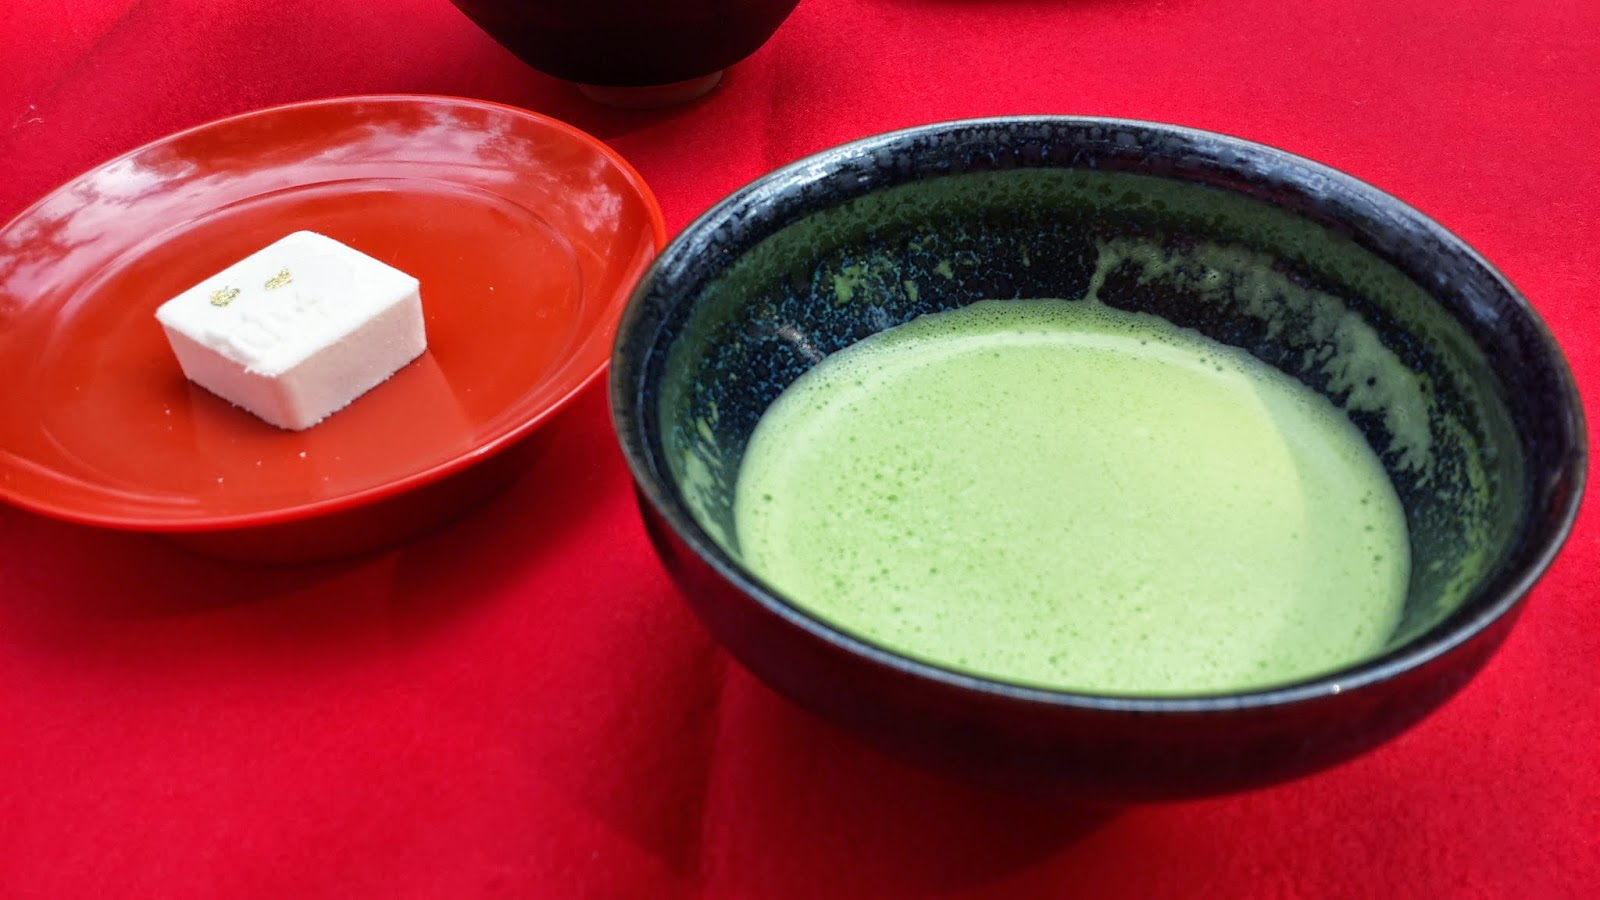 Cold green matcha tea